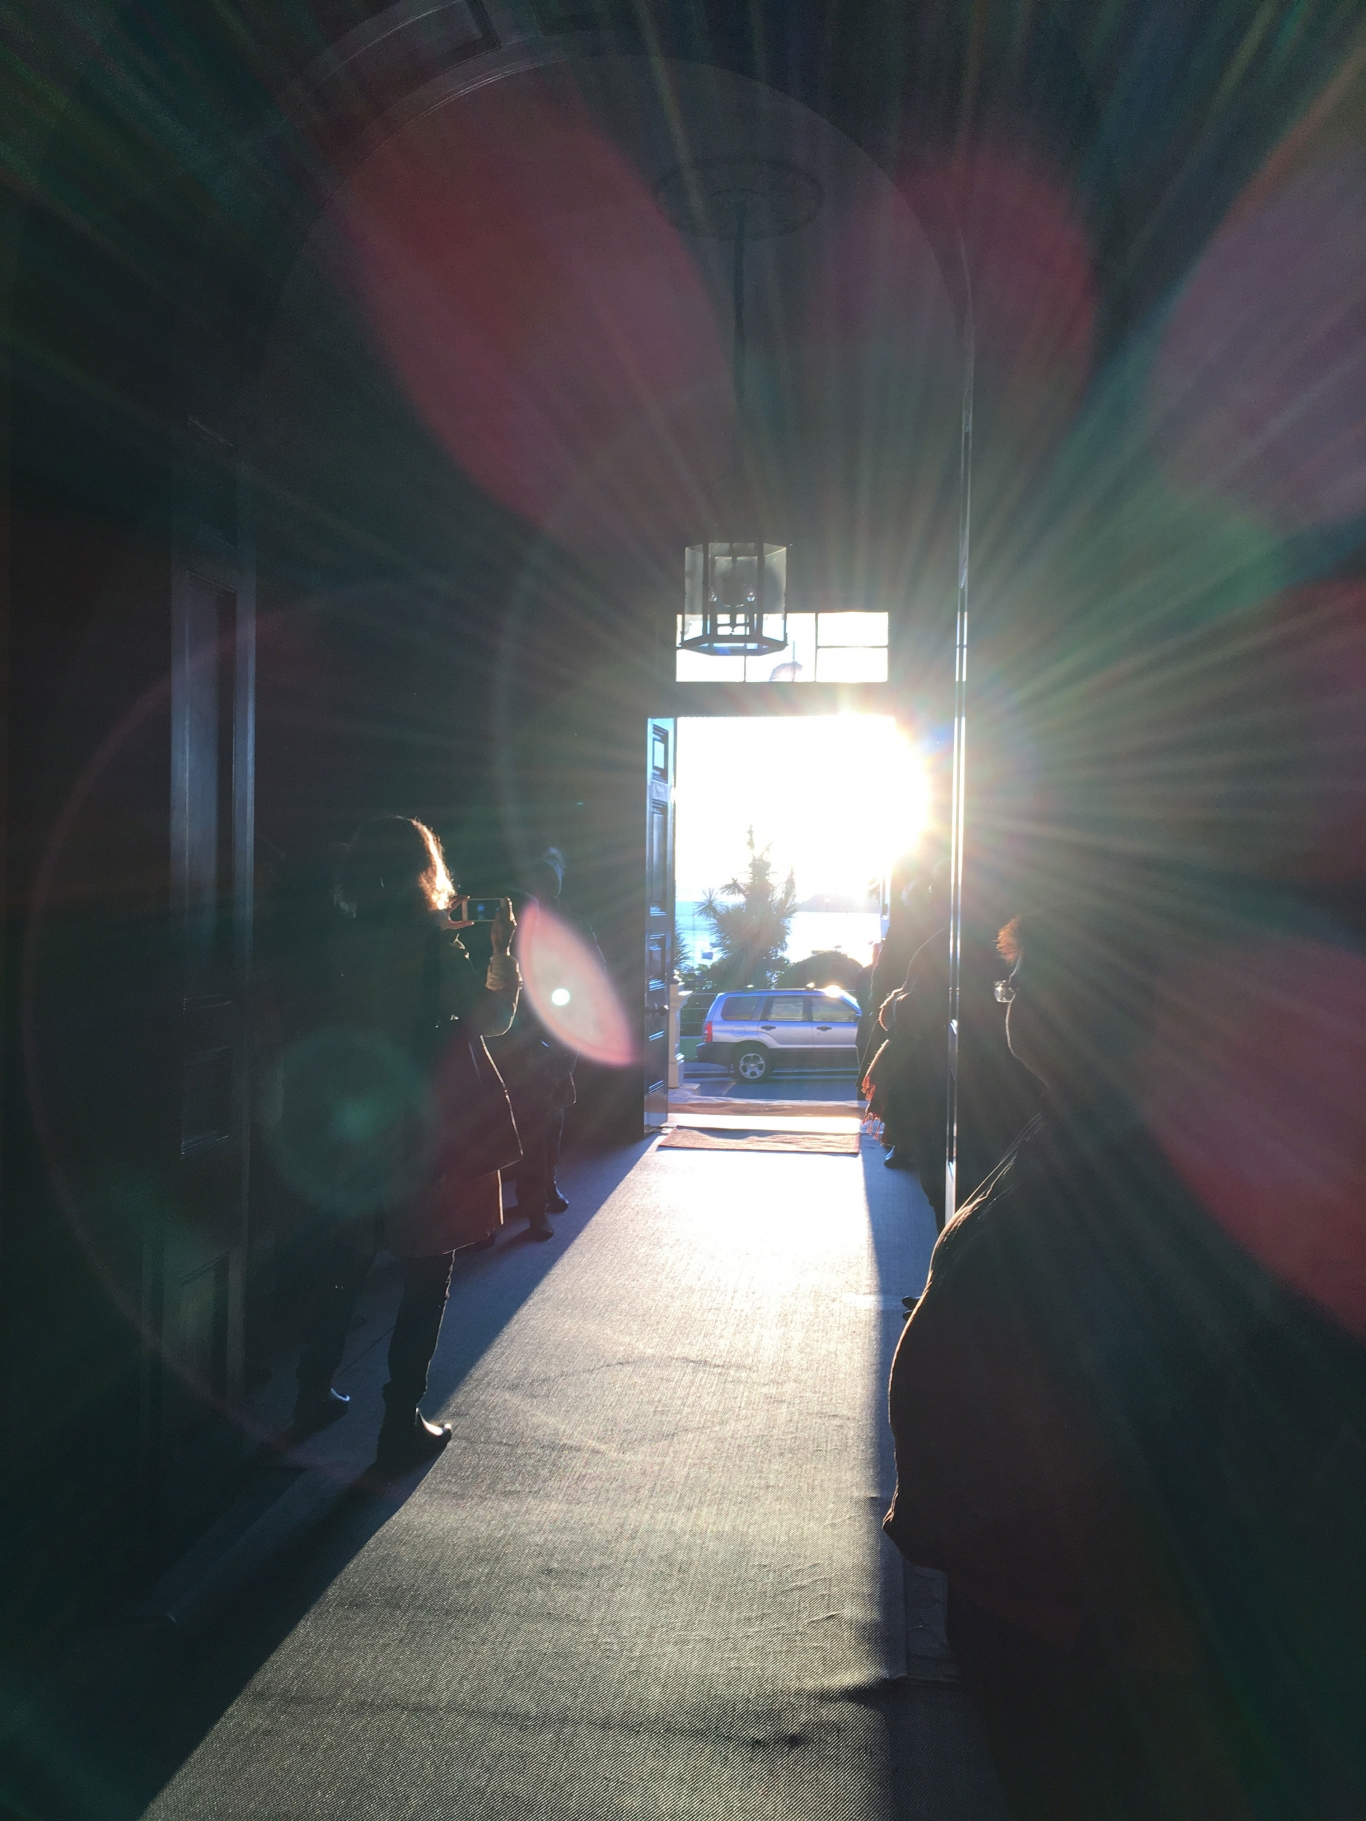 Looking down hallway and out of open front door with sunrise light streaming directly in.